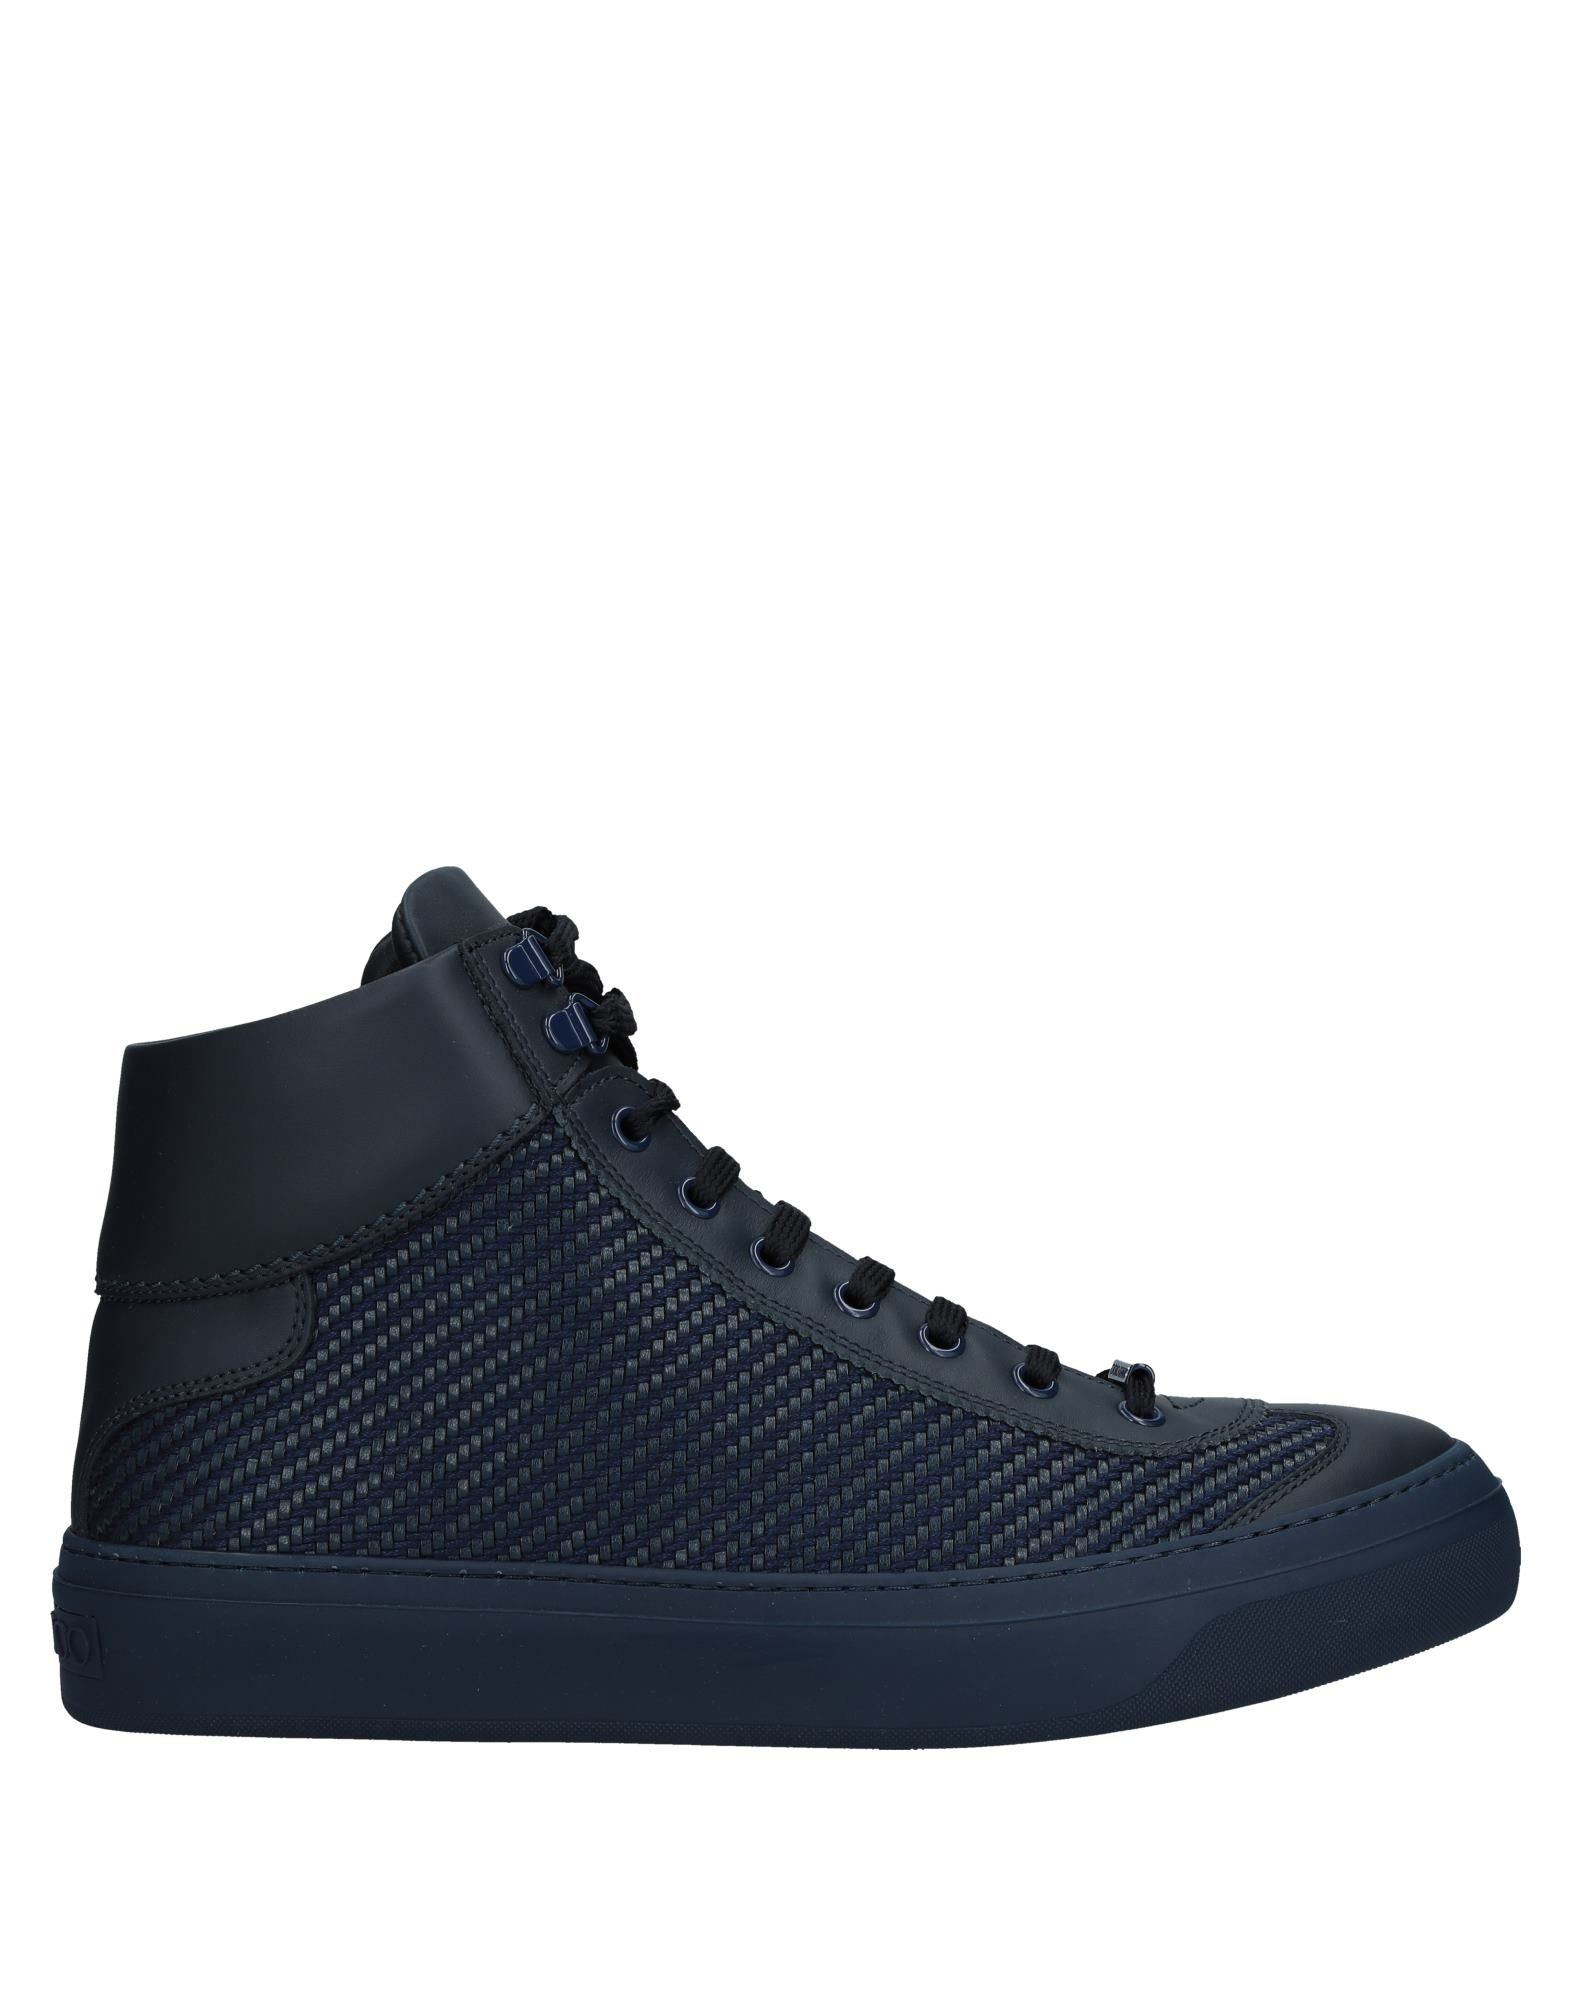 Sneakers Jimmy Choo Uomo - 11530541IF